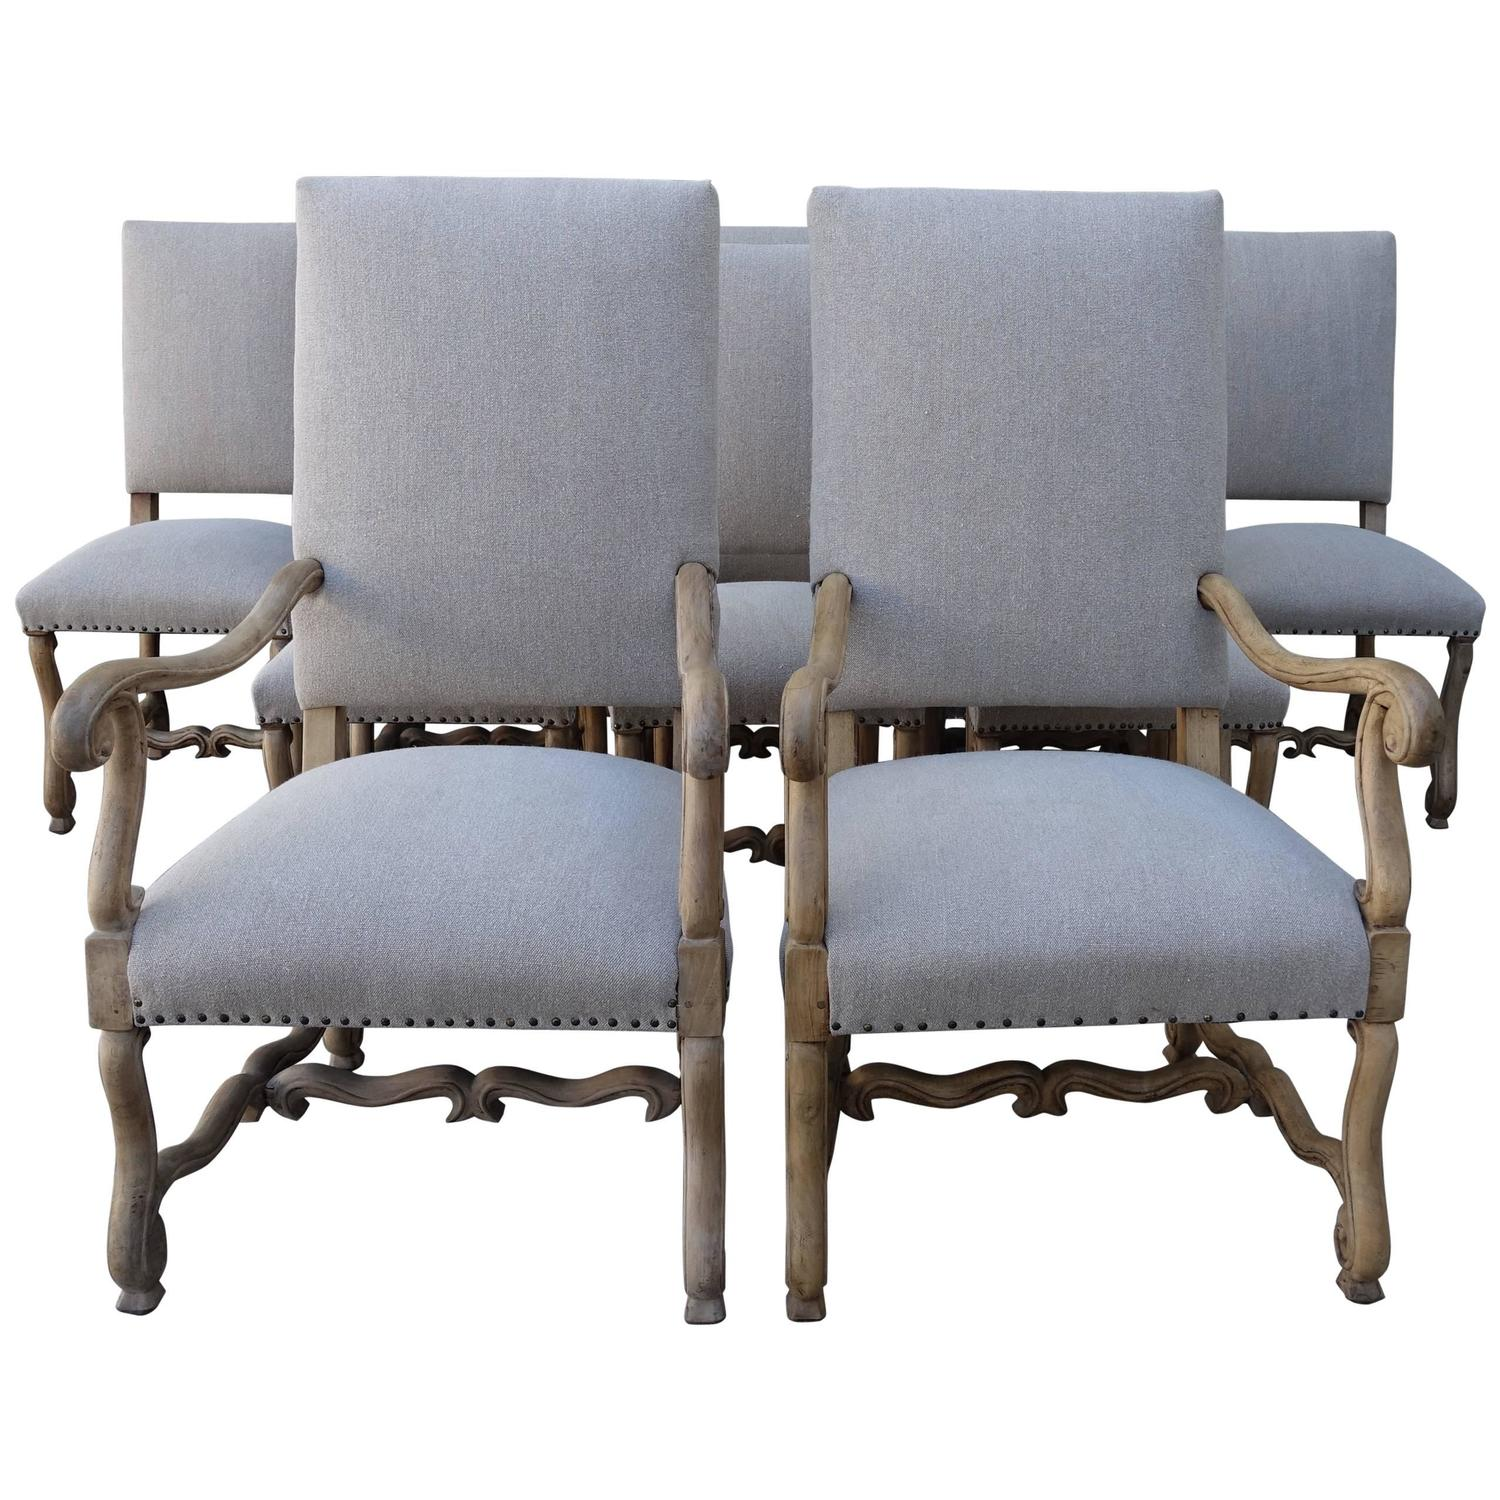 19th century spanish dining chairs ten for sale at 1stdibs